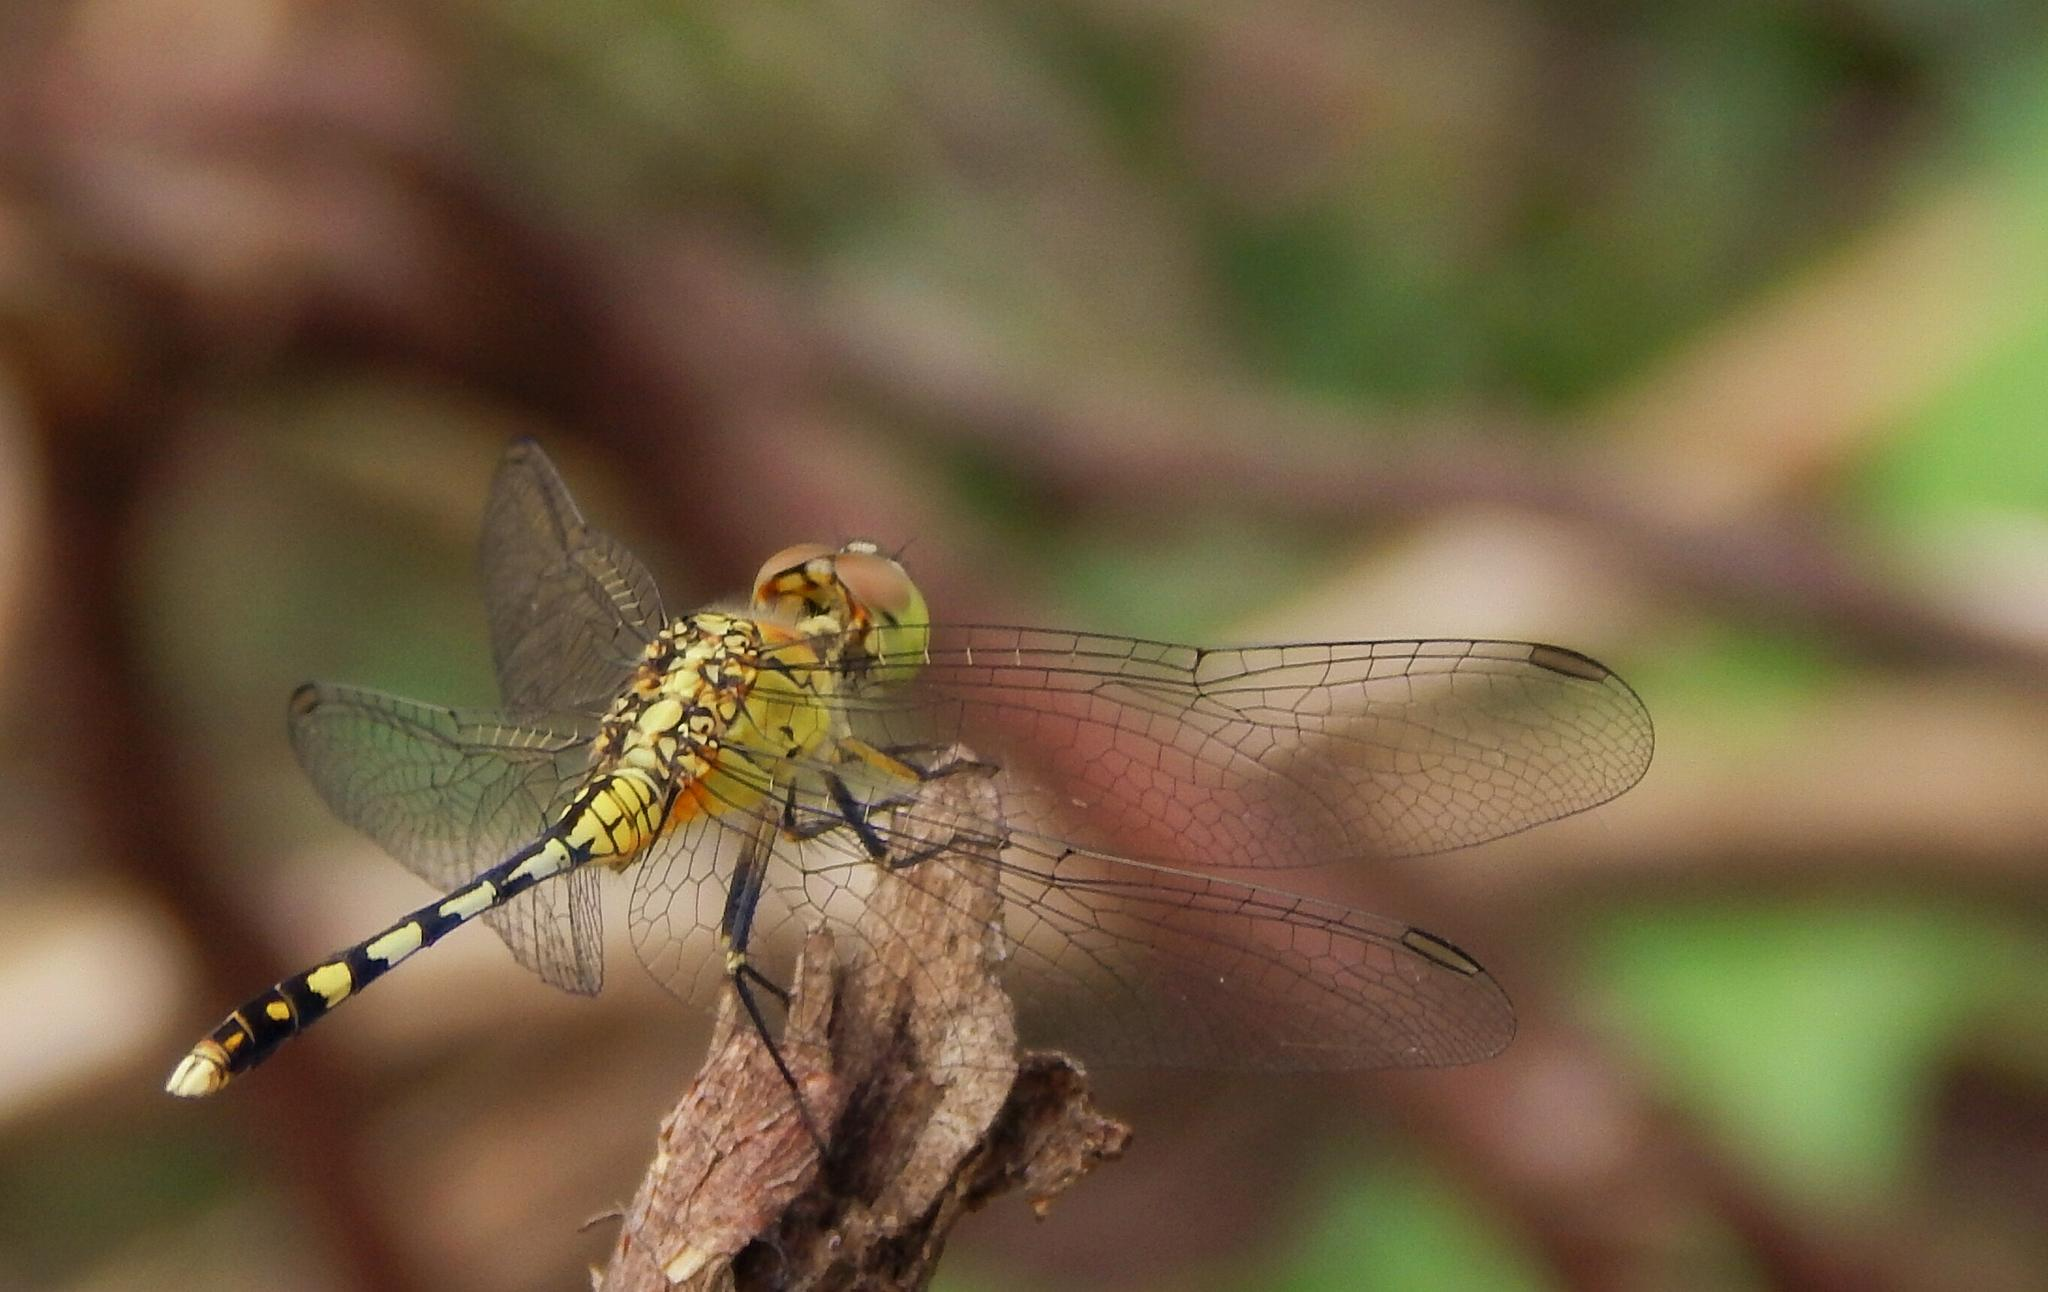 dragonfly 5 by Aritra ghosh